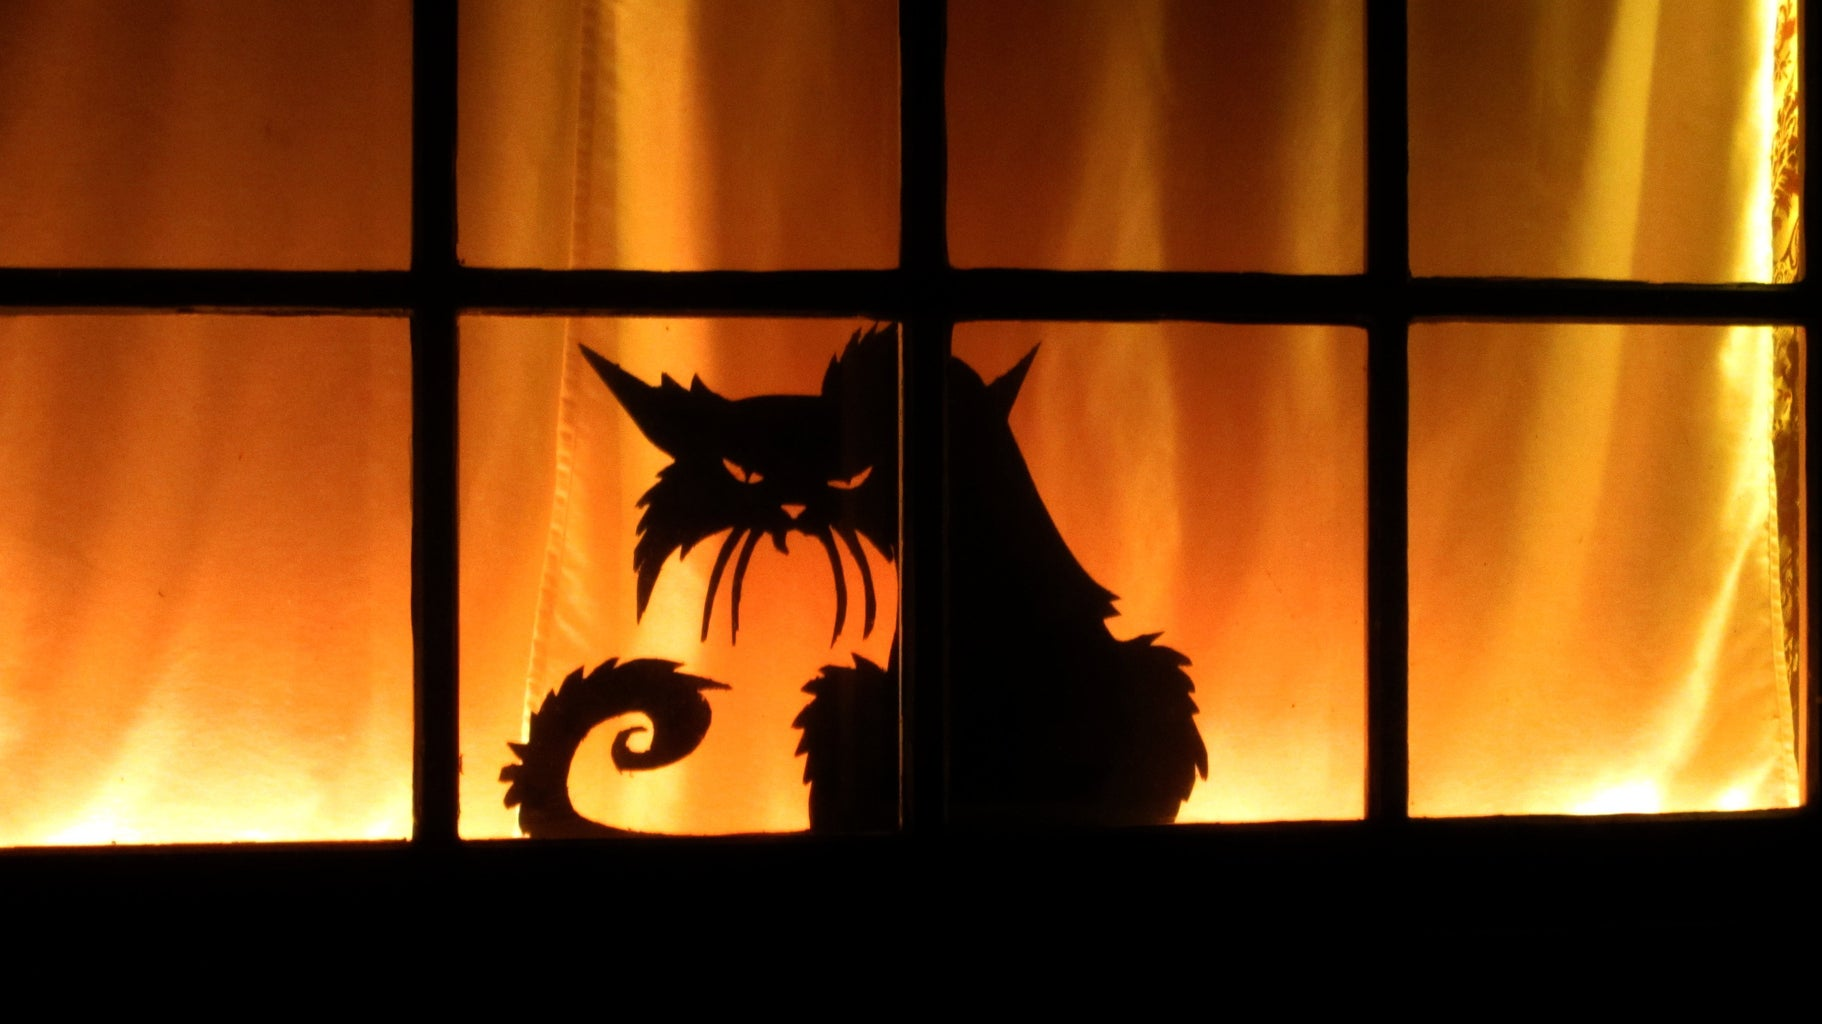 Mount the Silhouettes in the Windows of Your House